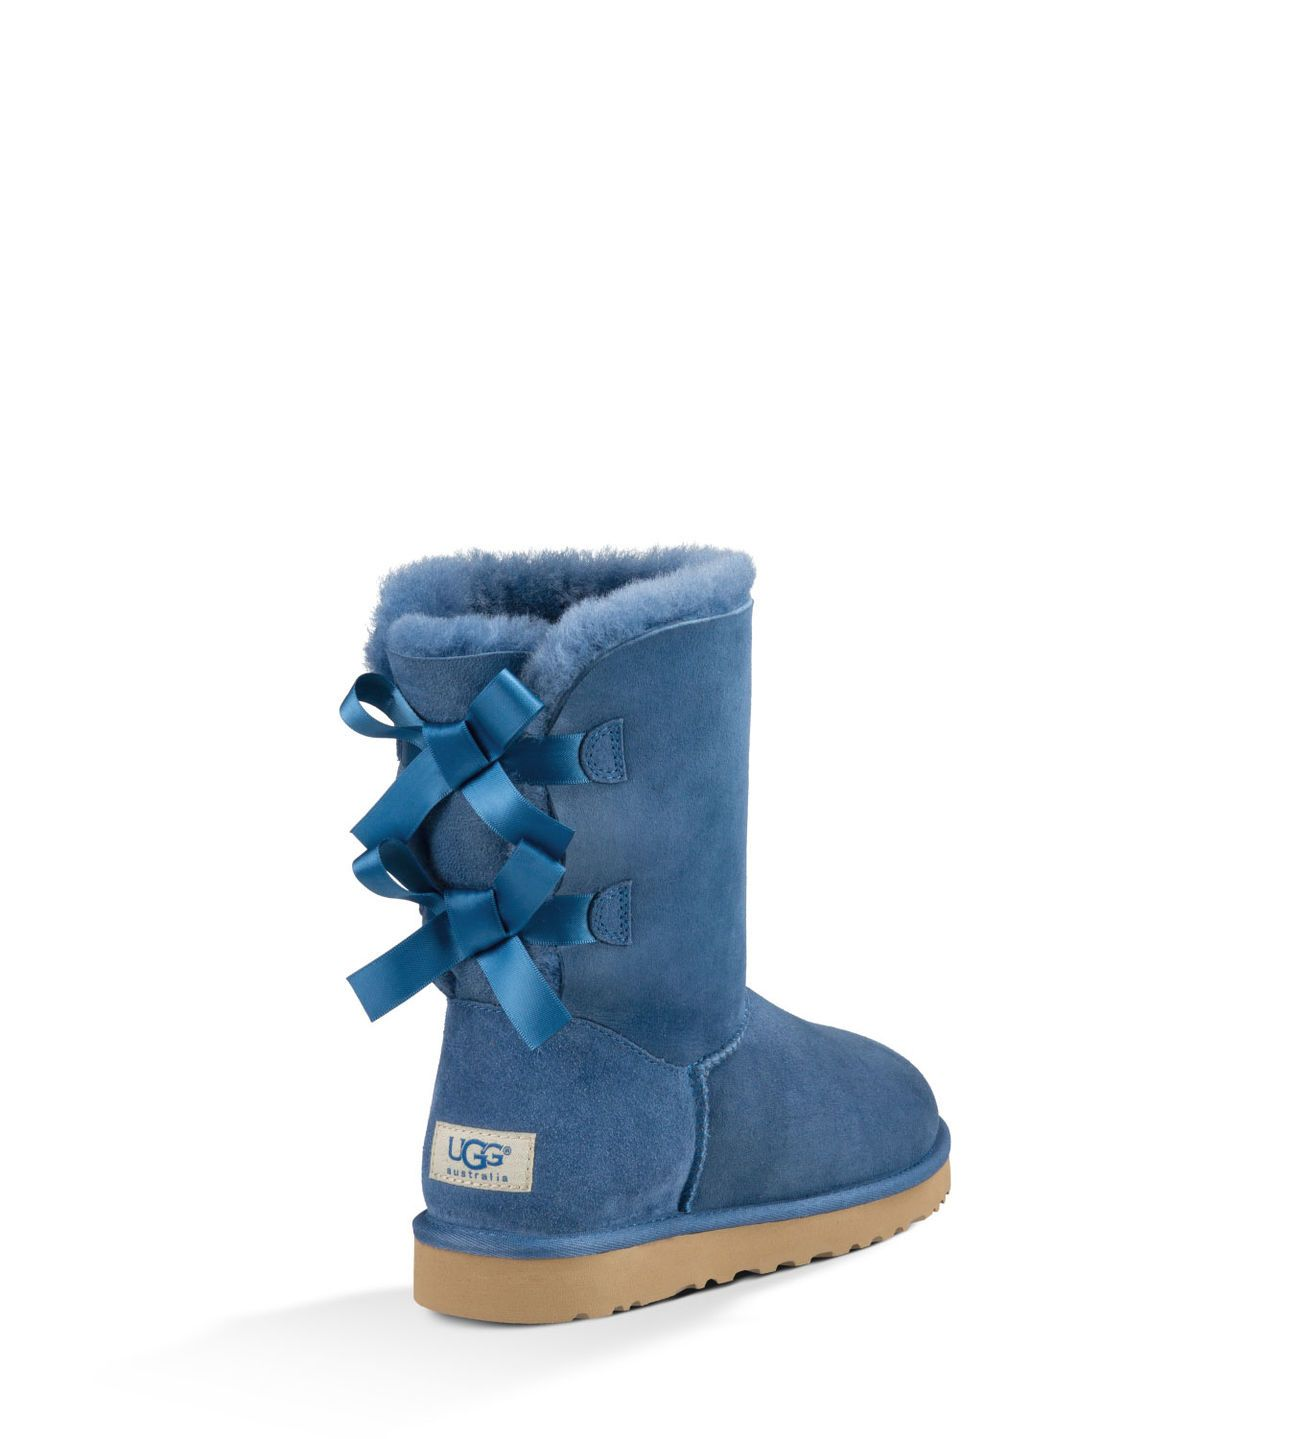 cc0f8c145b7 Women's Share this product Bailey Bow II Boot | For Me | Bailey bow ...